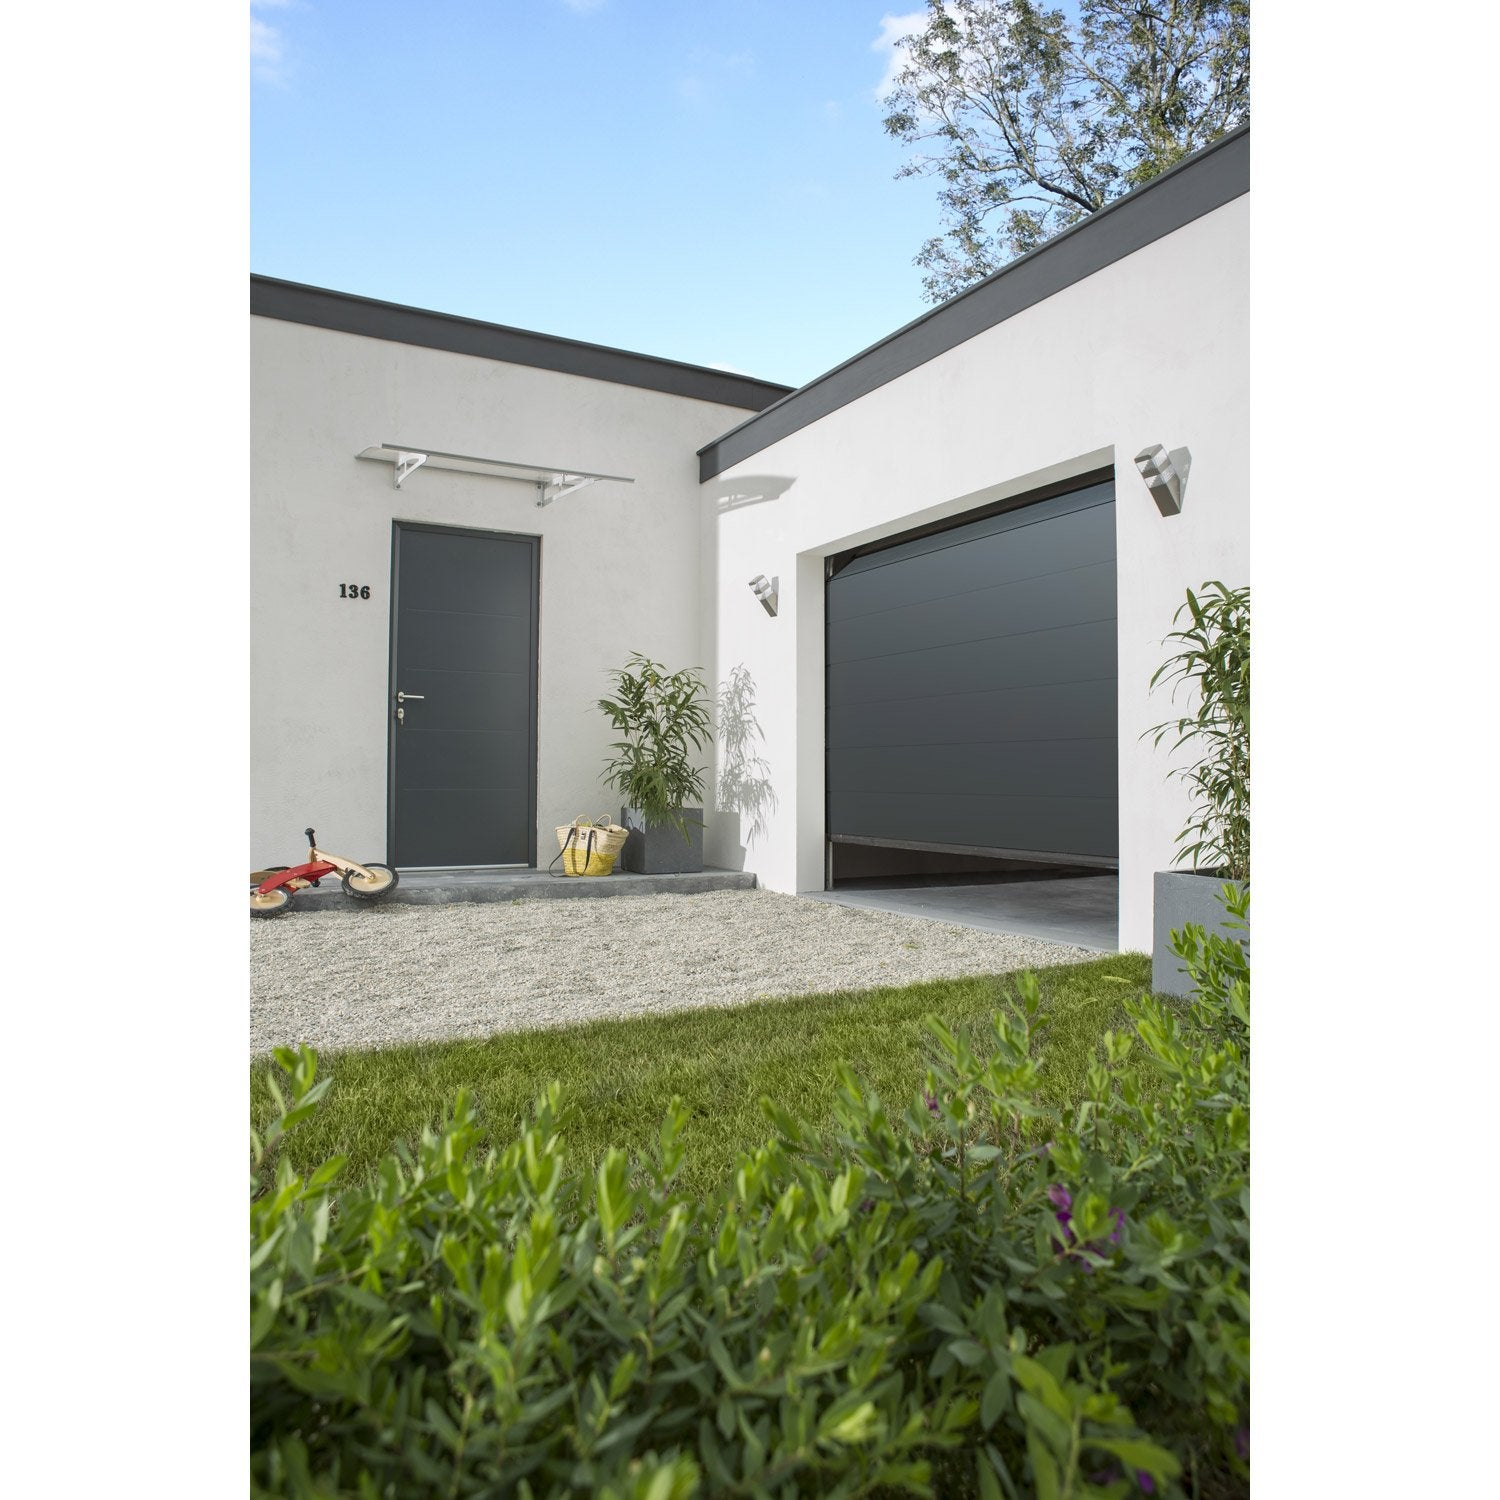 Porte de garage sectionnelle munich rainures horizontales gris 200 x 240 c - Leroy merlin porte garage sectionnelle ...